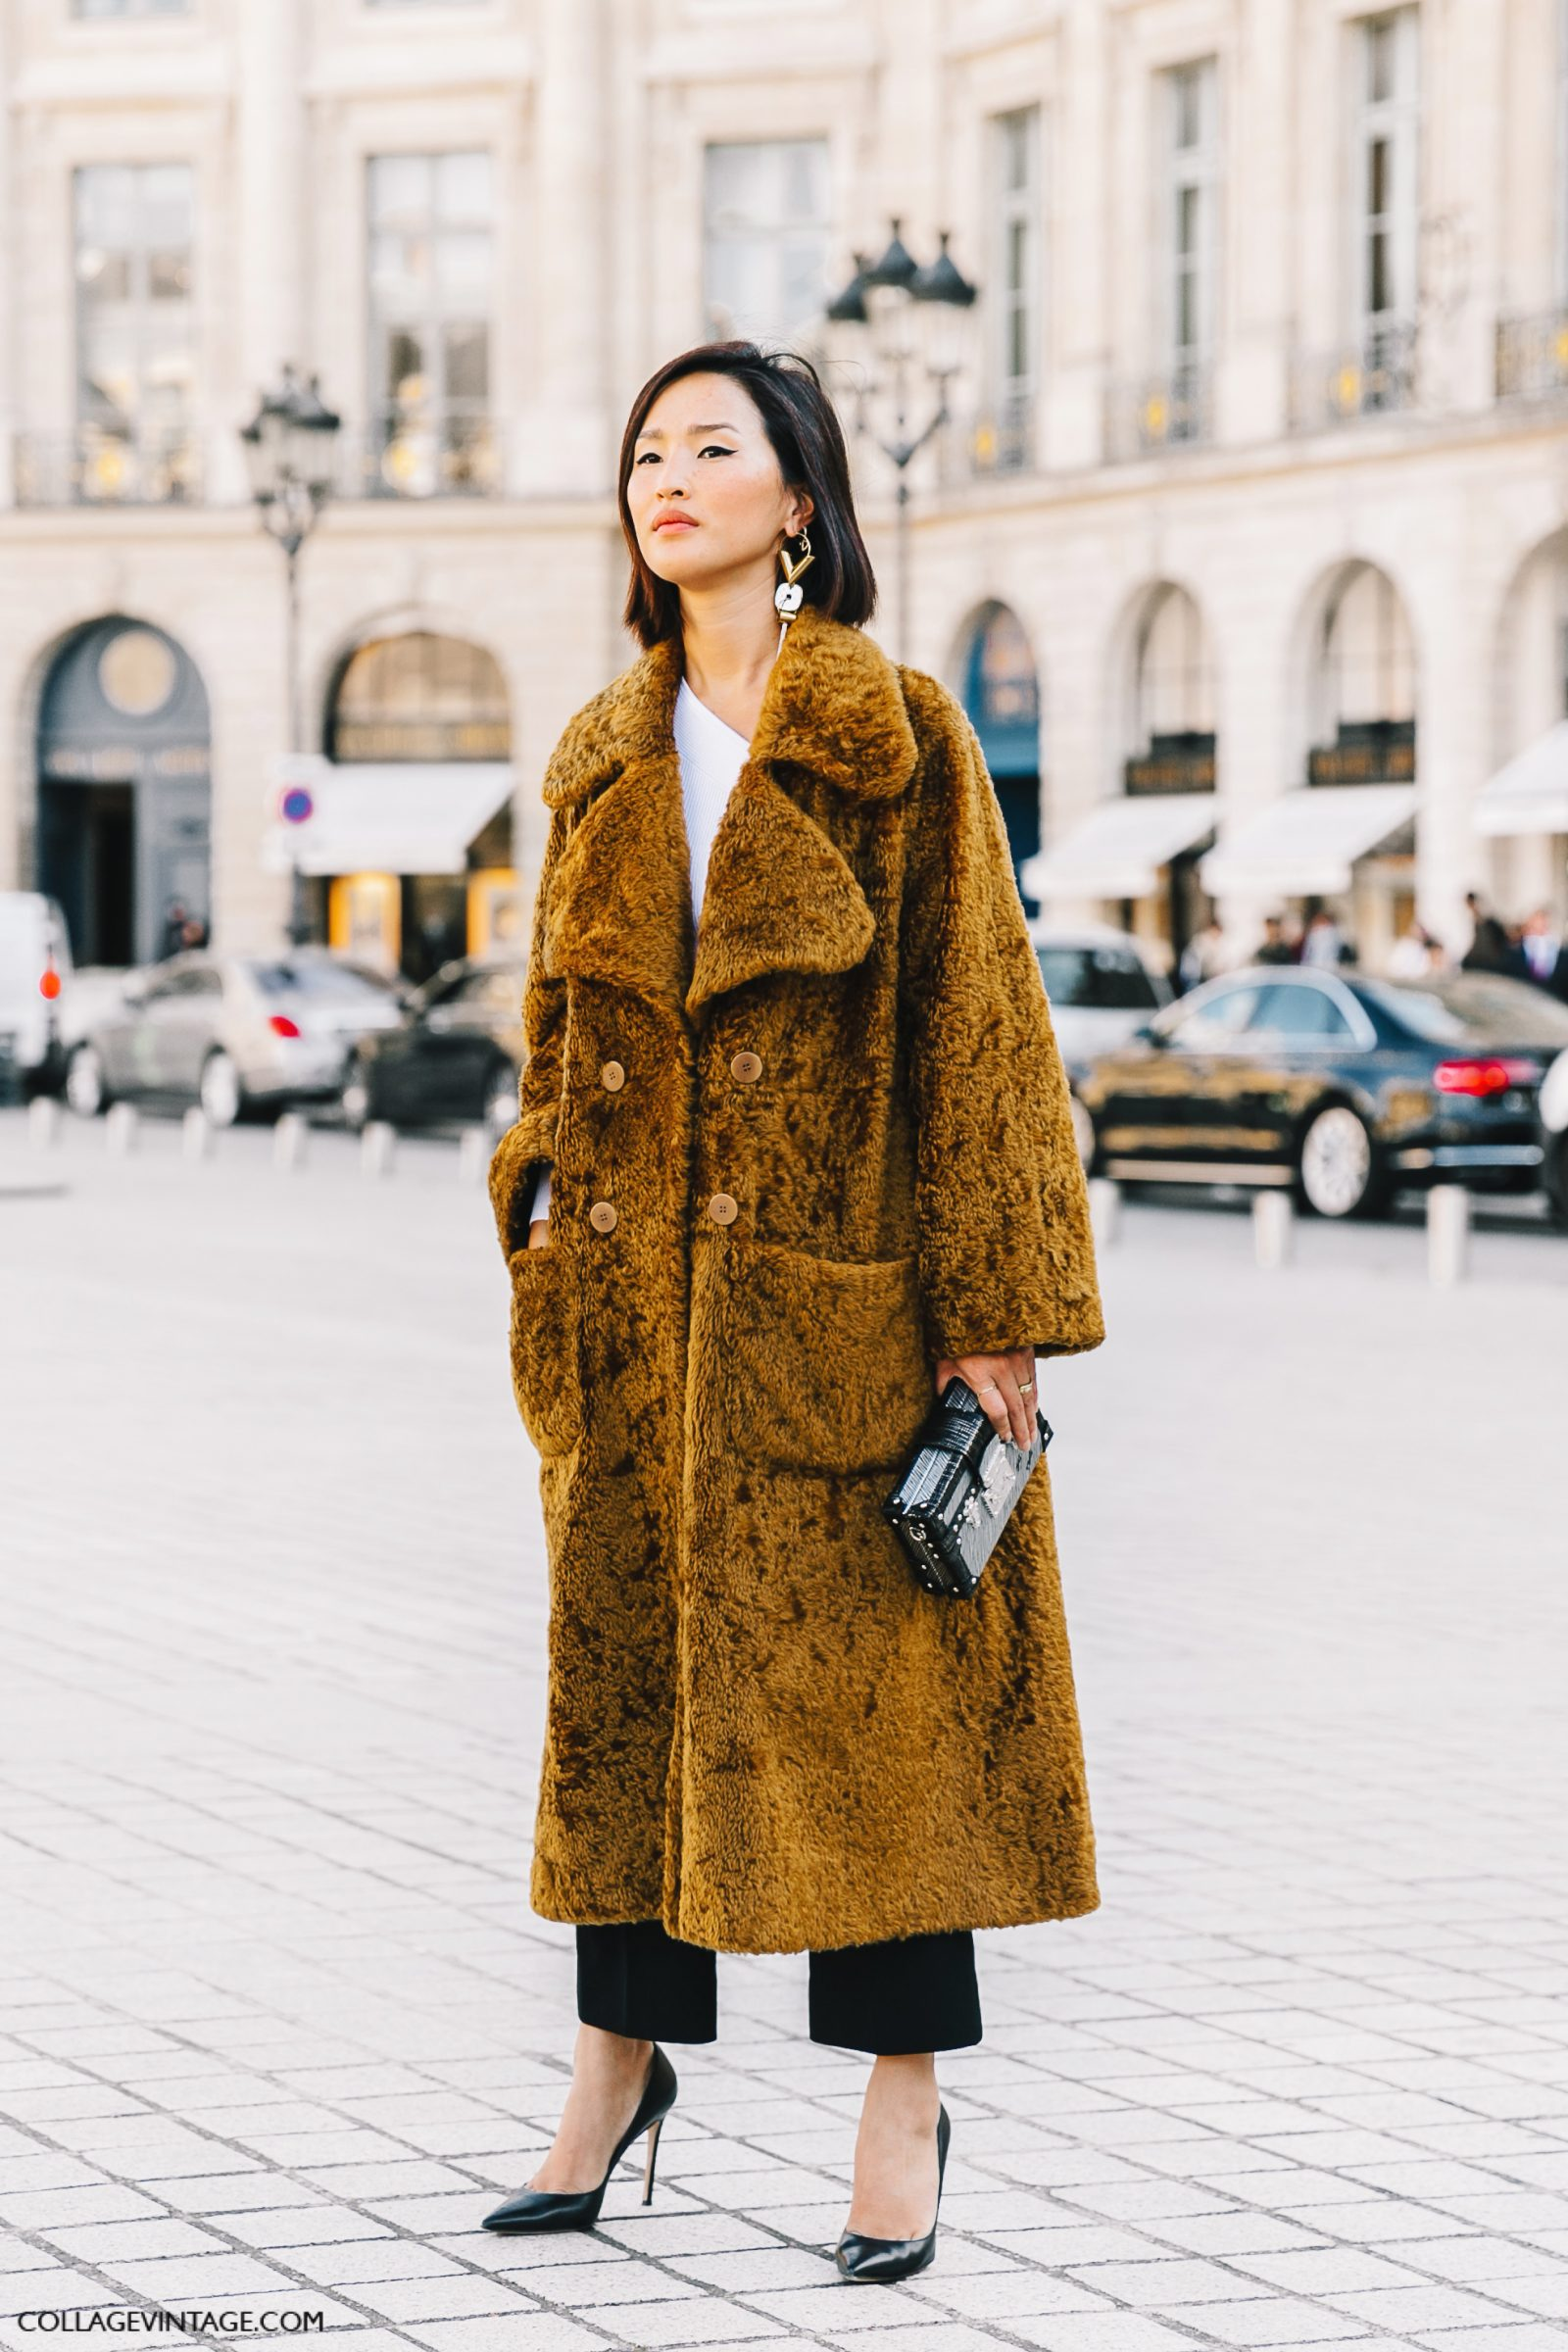 pfw-paris_fashion_week_ss17-street_style-outfit-collage_vintage-louis_vuitton-miu_miu-14